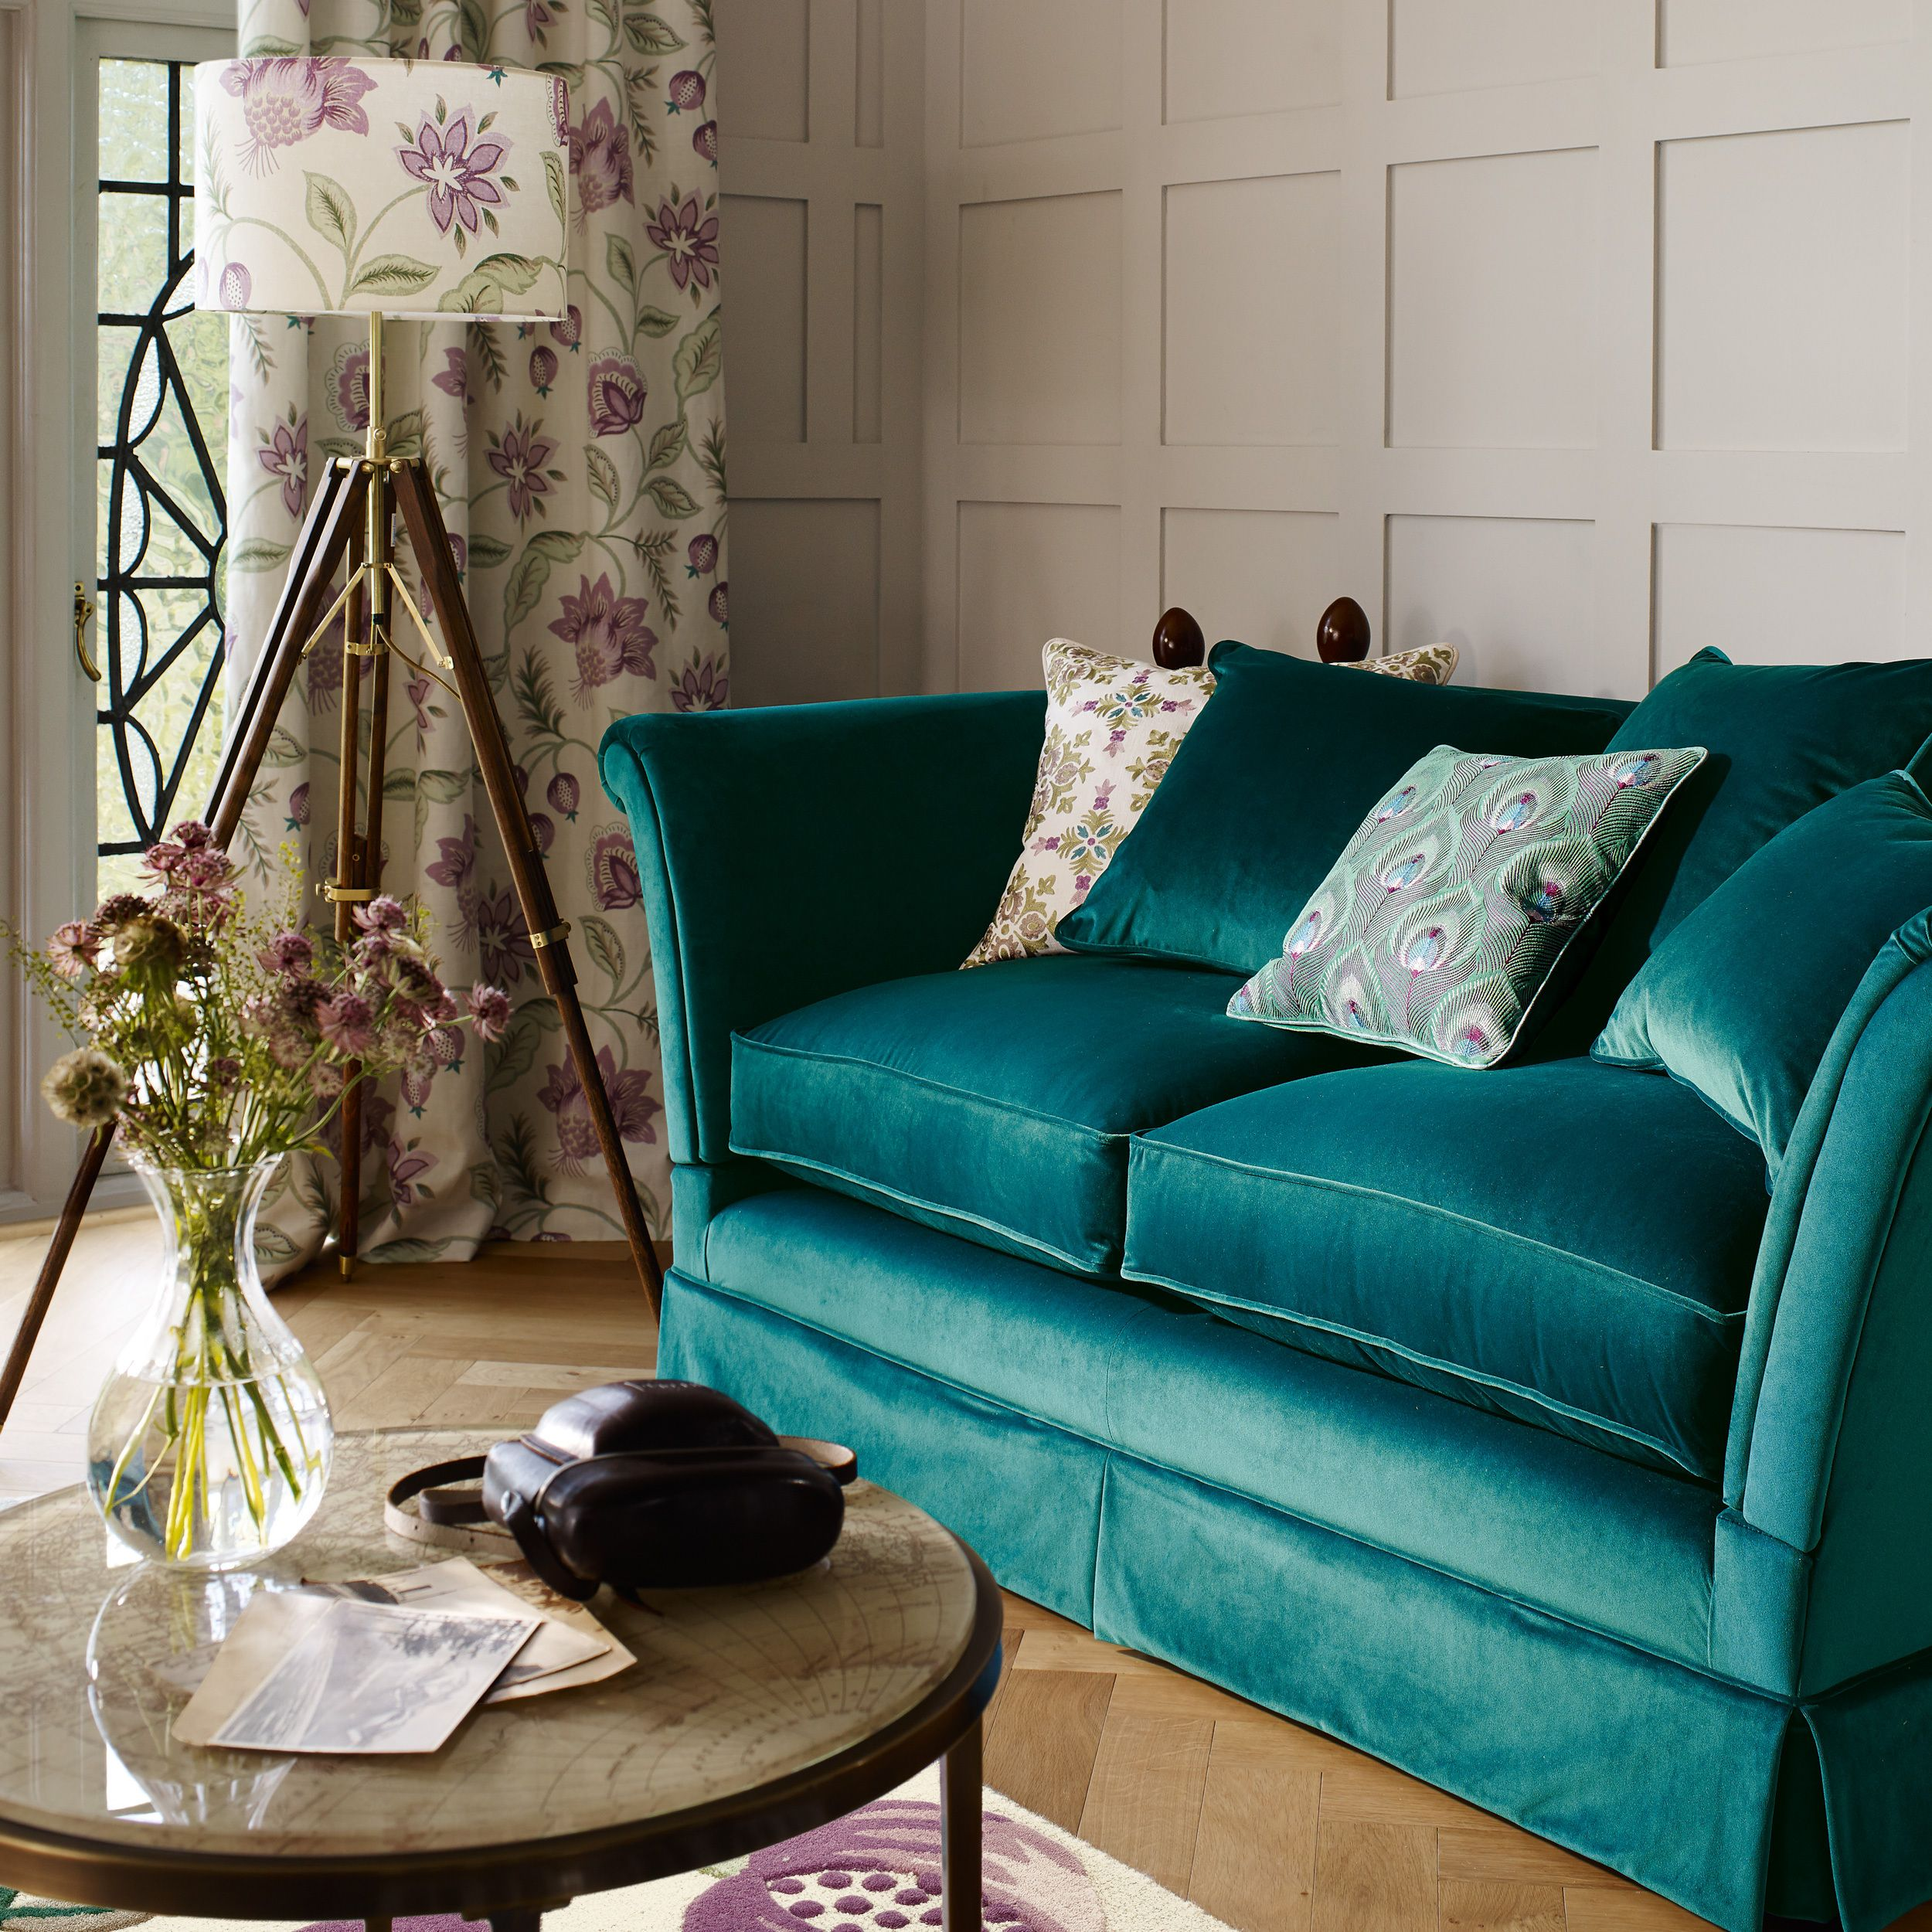 44++ Laura ashley living room sets ideas in 2021